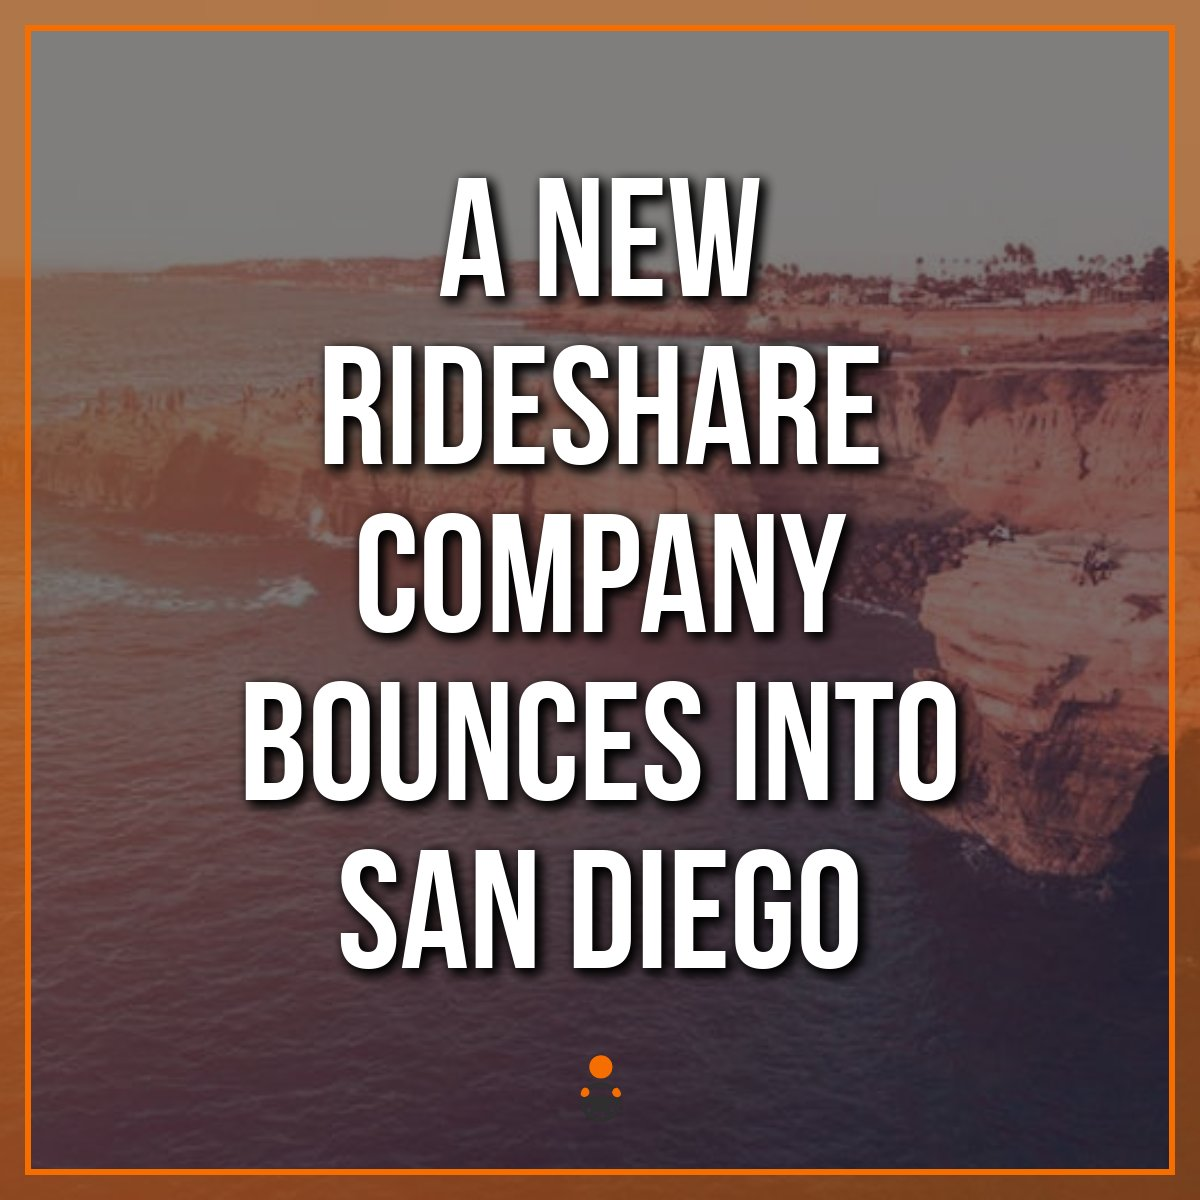 A New Rideshare Company Bounces Into San Diego